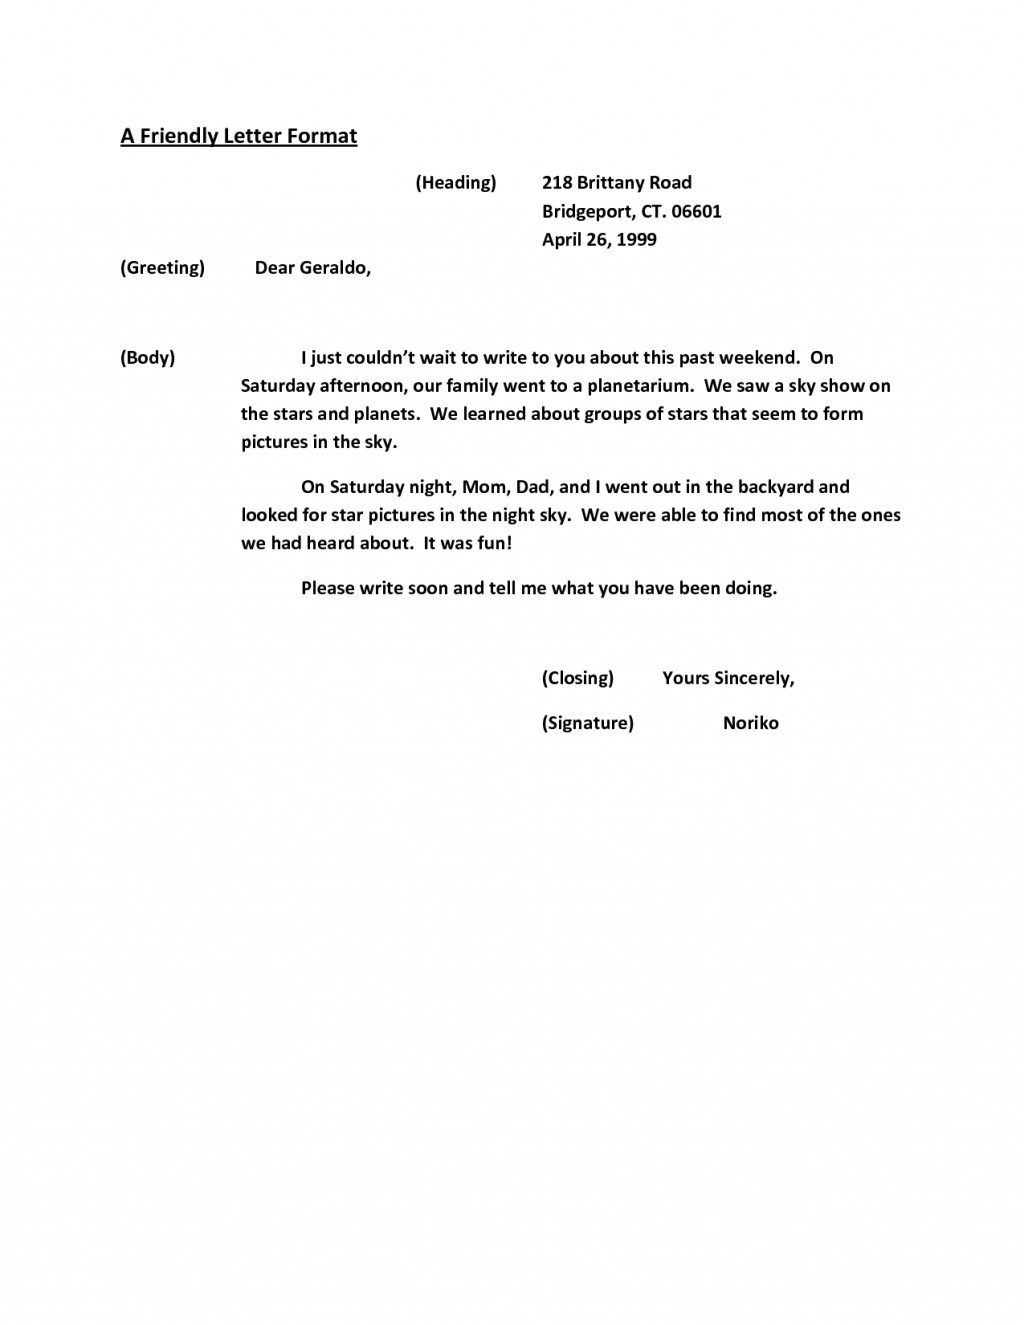 019 Essay Example Friendly Letter Format Mwvacqzf Phenomenal Header Mla Paper Margins Large